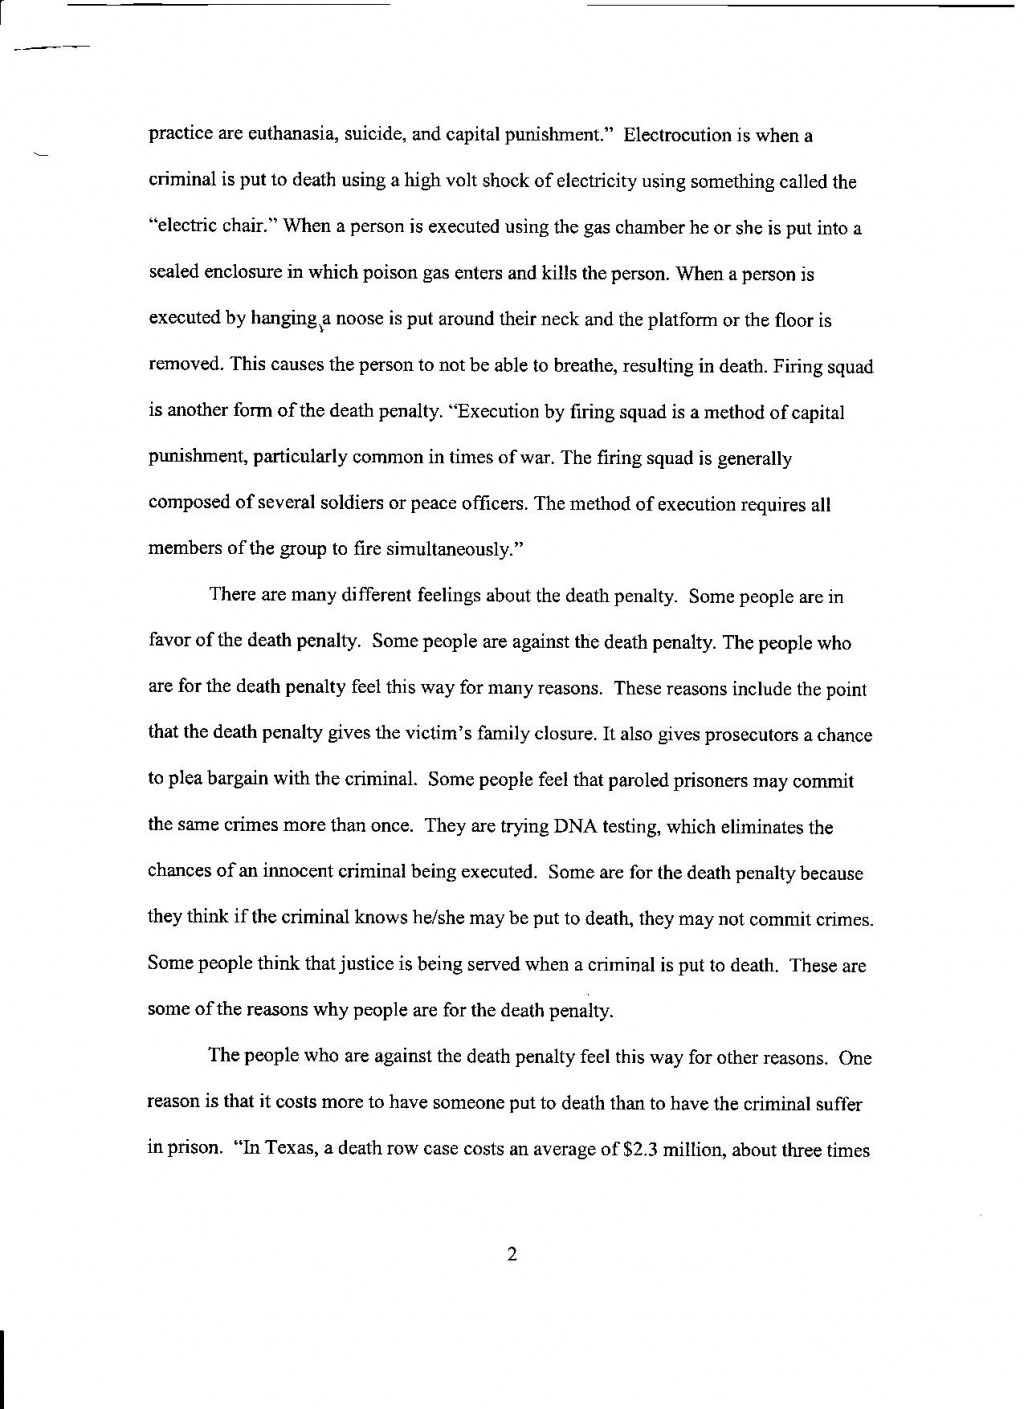 011 Death Penalty Research Paper Thesis Statement Pg Astounding Large